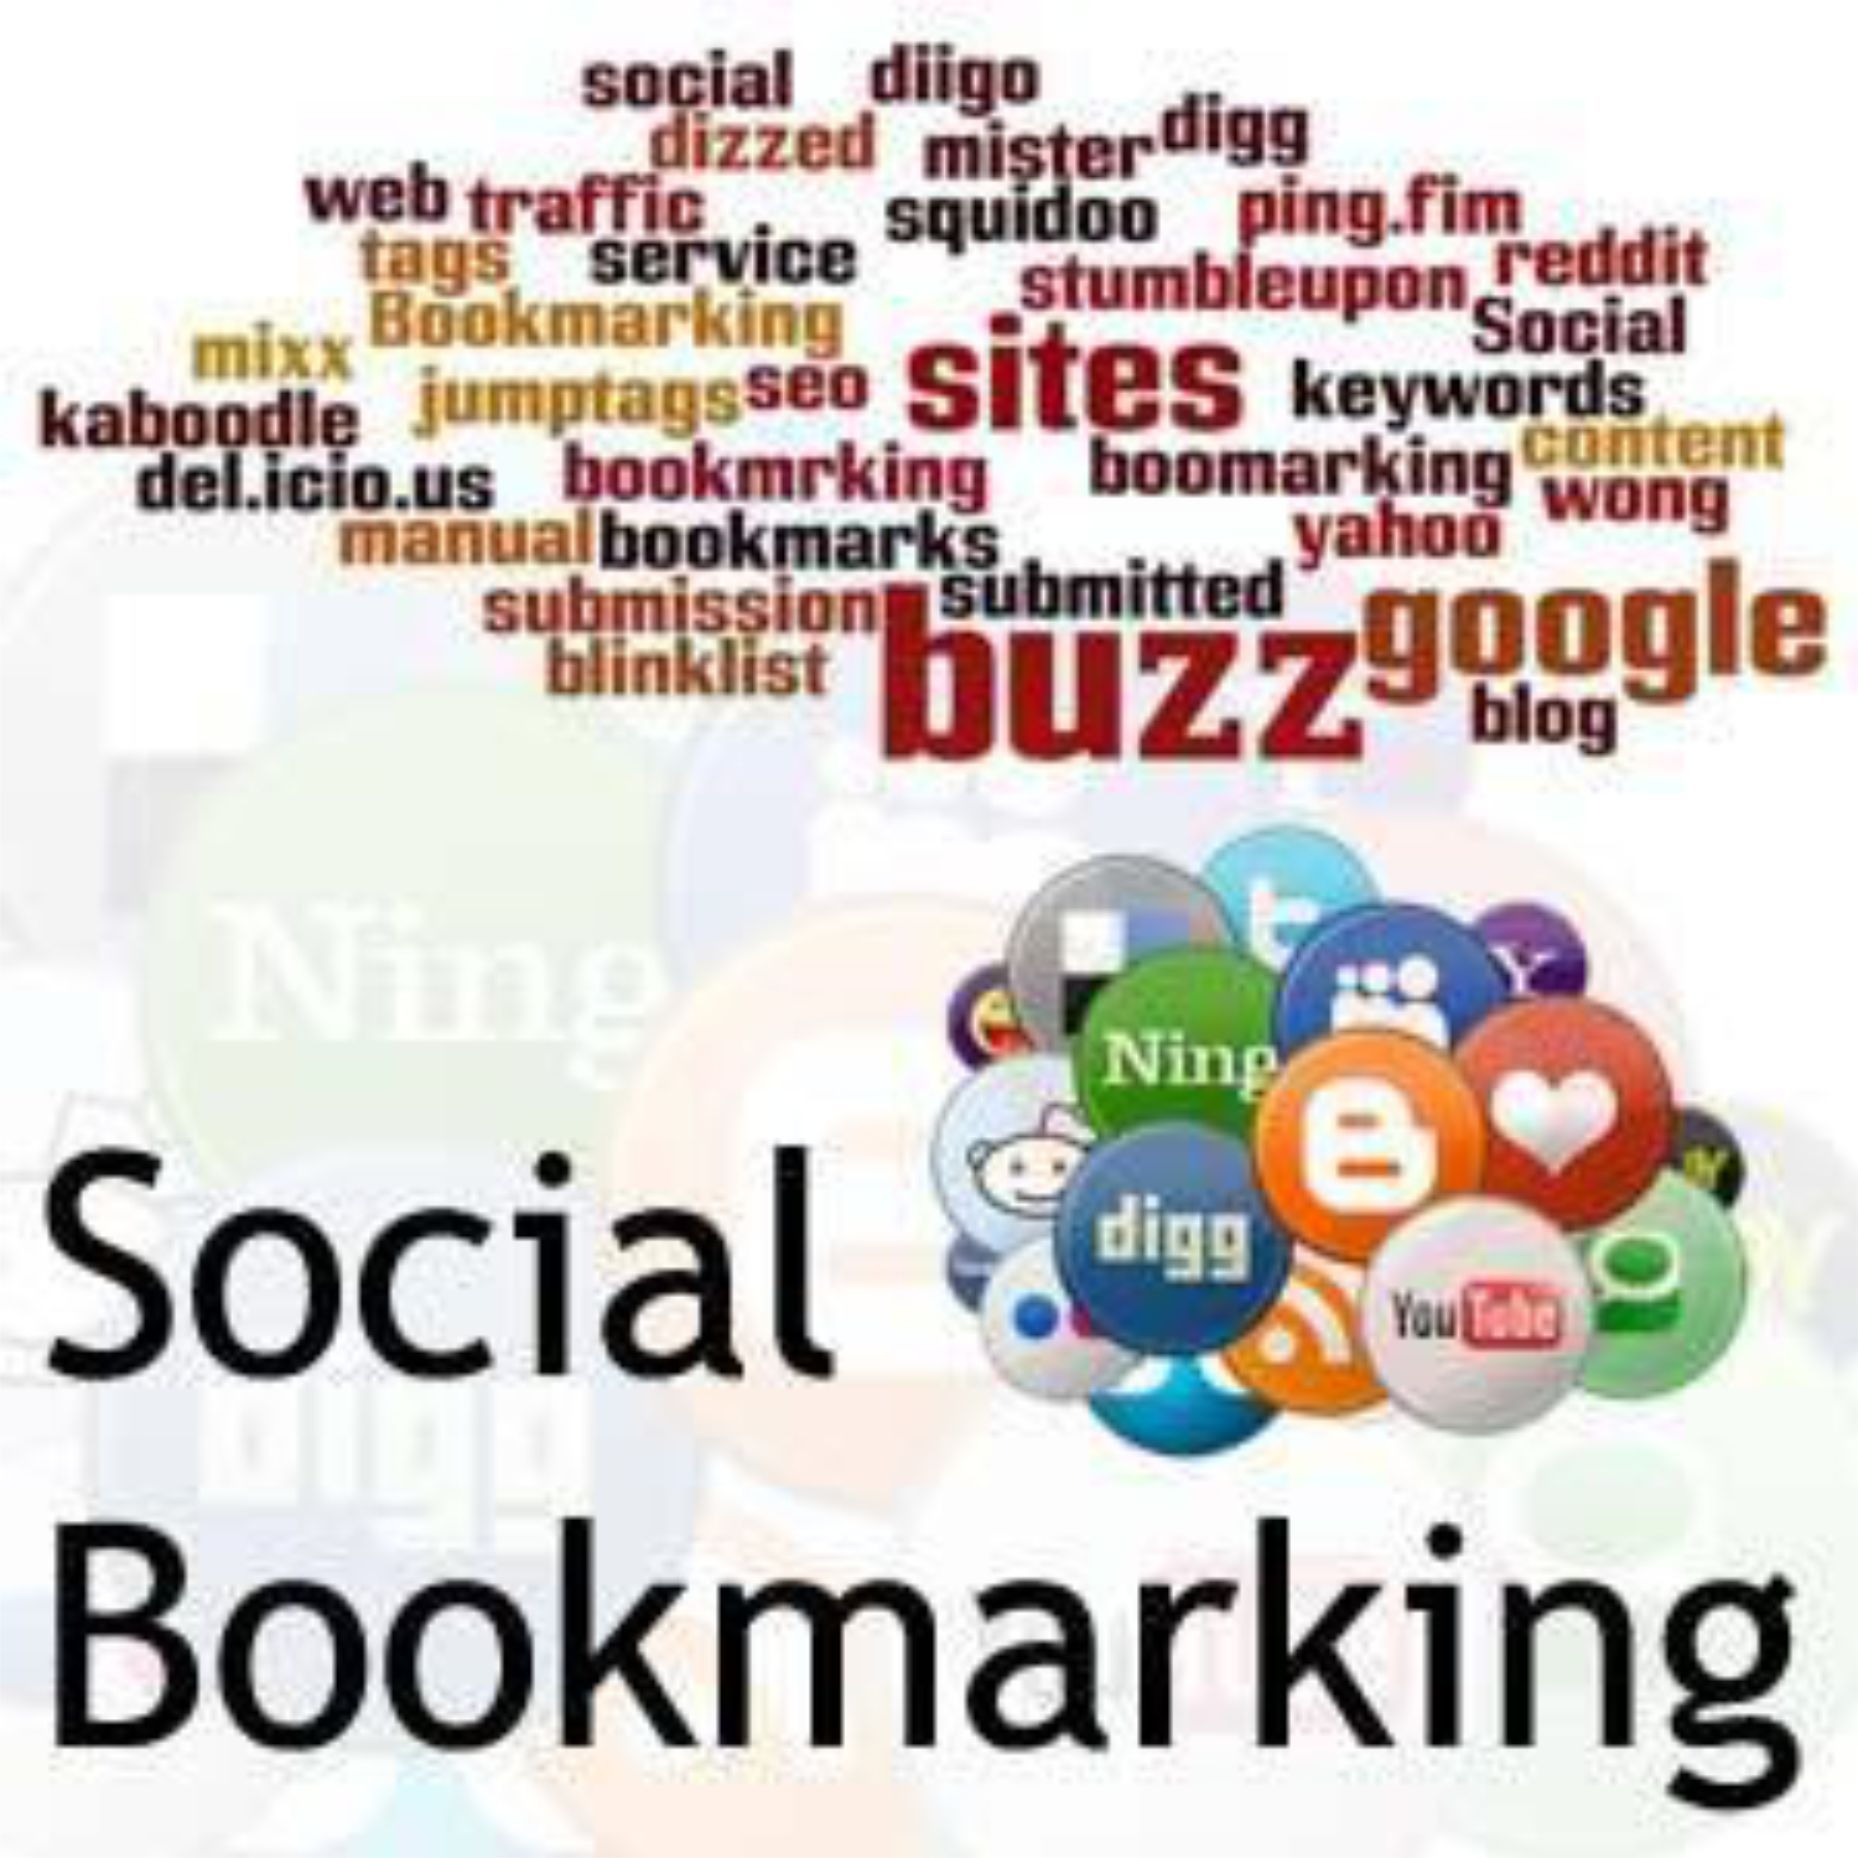 Egaevans Manually Bookmark Your Site To Top 15 Social Bookmarking Sites For 5 On Fiverr Com Social Bookmarking Bookmarking Sites Web Traffic